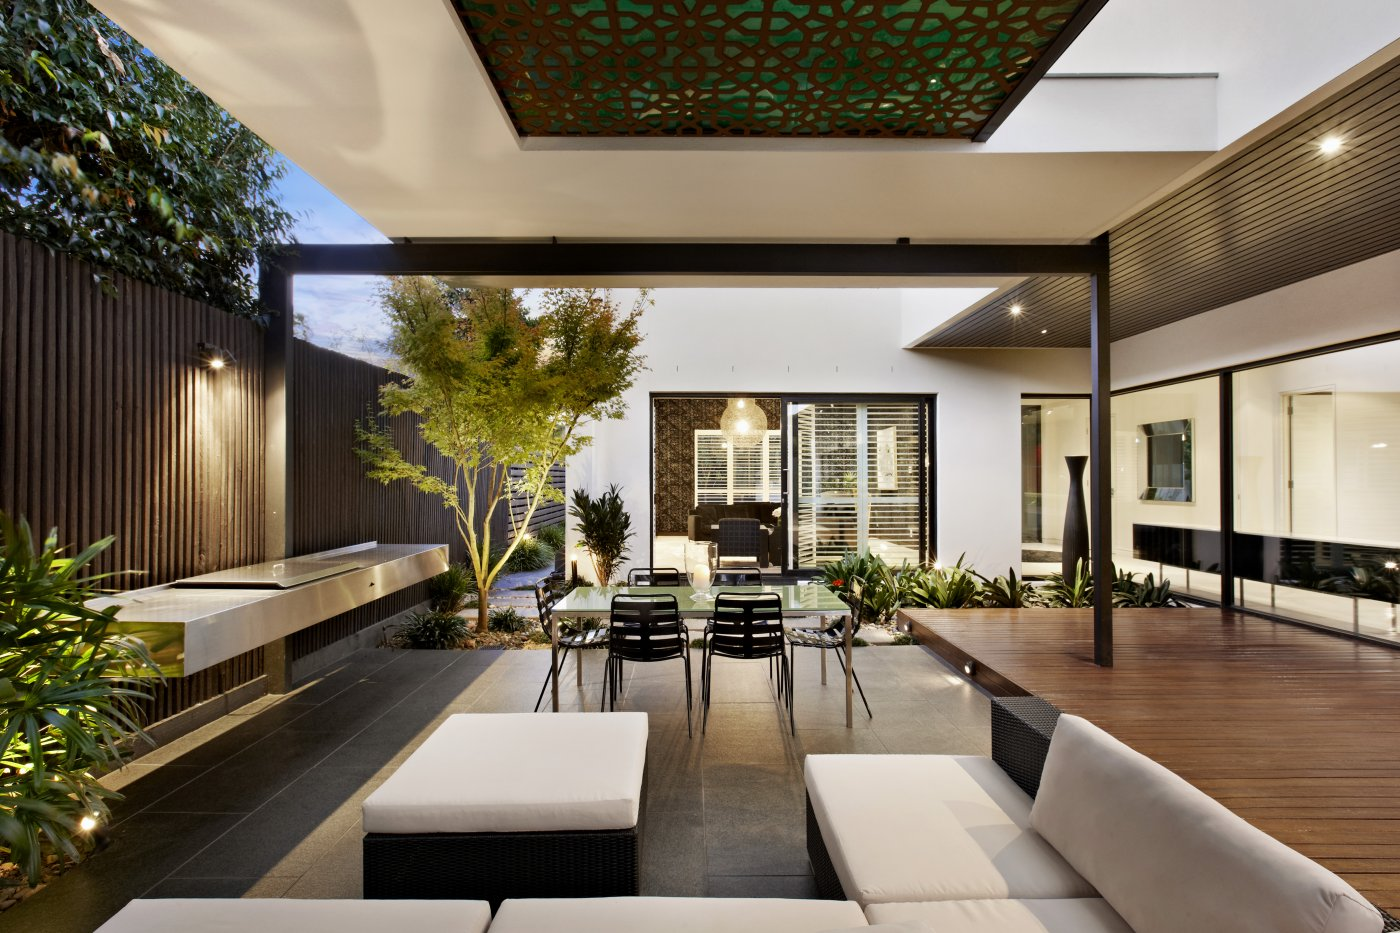 What are the five 'must have' design features for a new luxury home